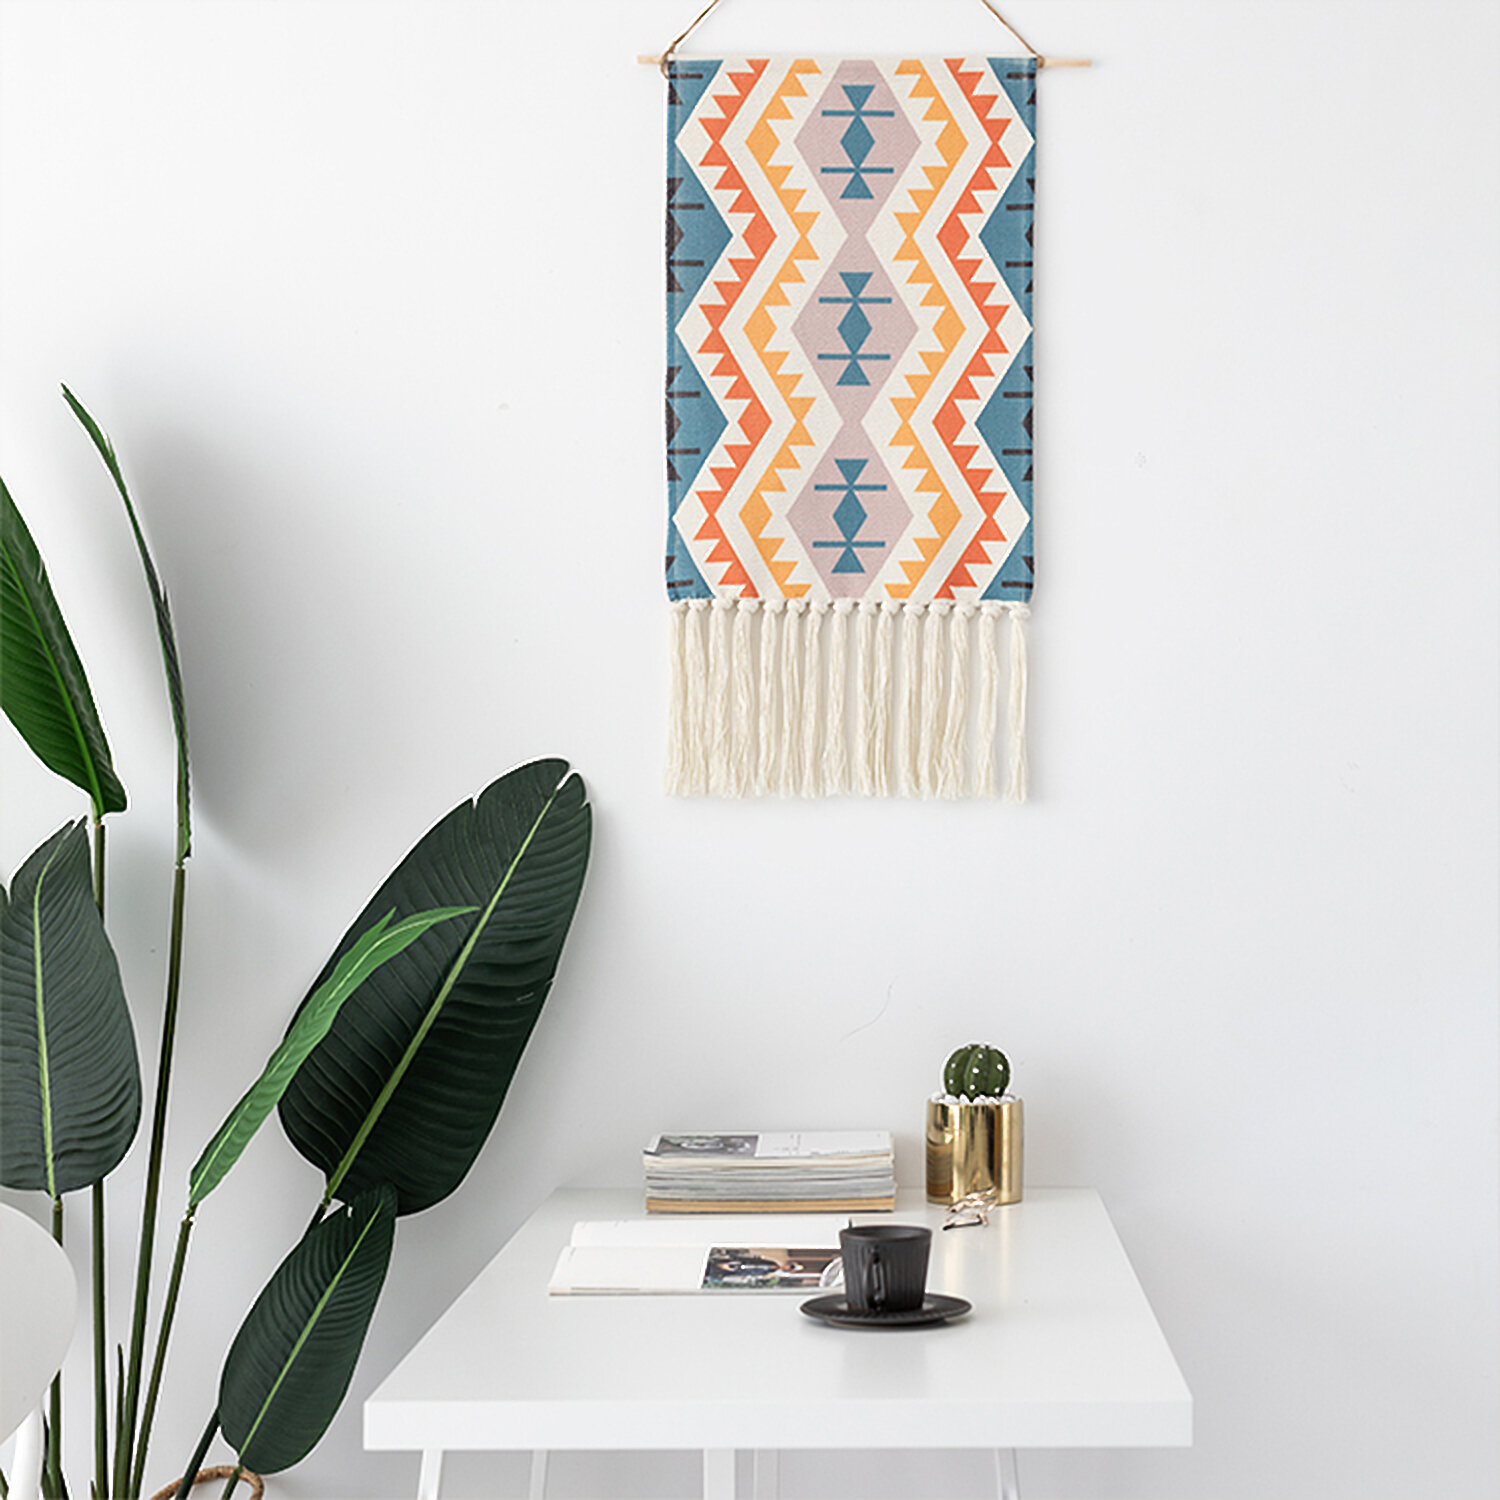 Traditional Boho Woven Tapestry Wall Hanging With Regard To Most Up To Date Blended Fabric Wall Hangings With Hanging Accessories Included (View 8 of 20)